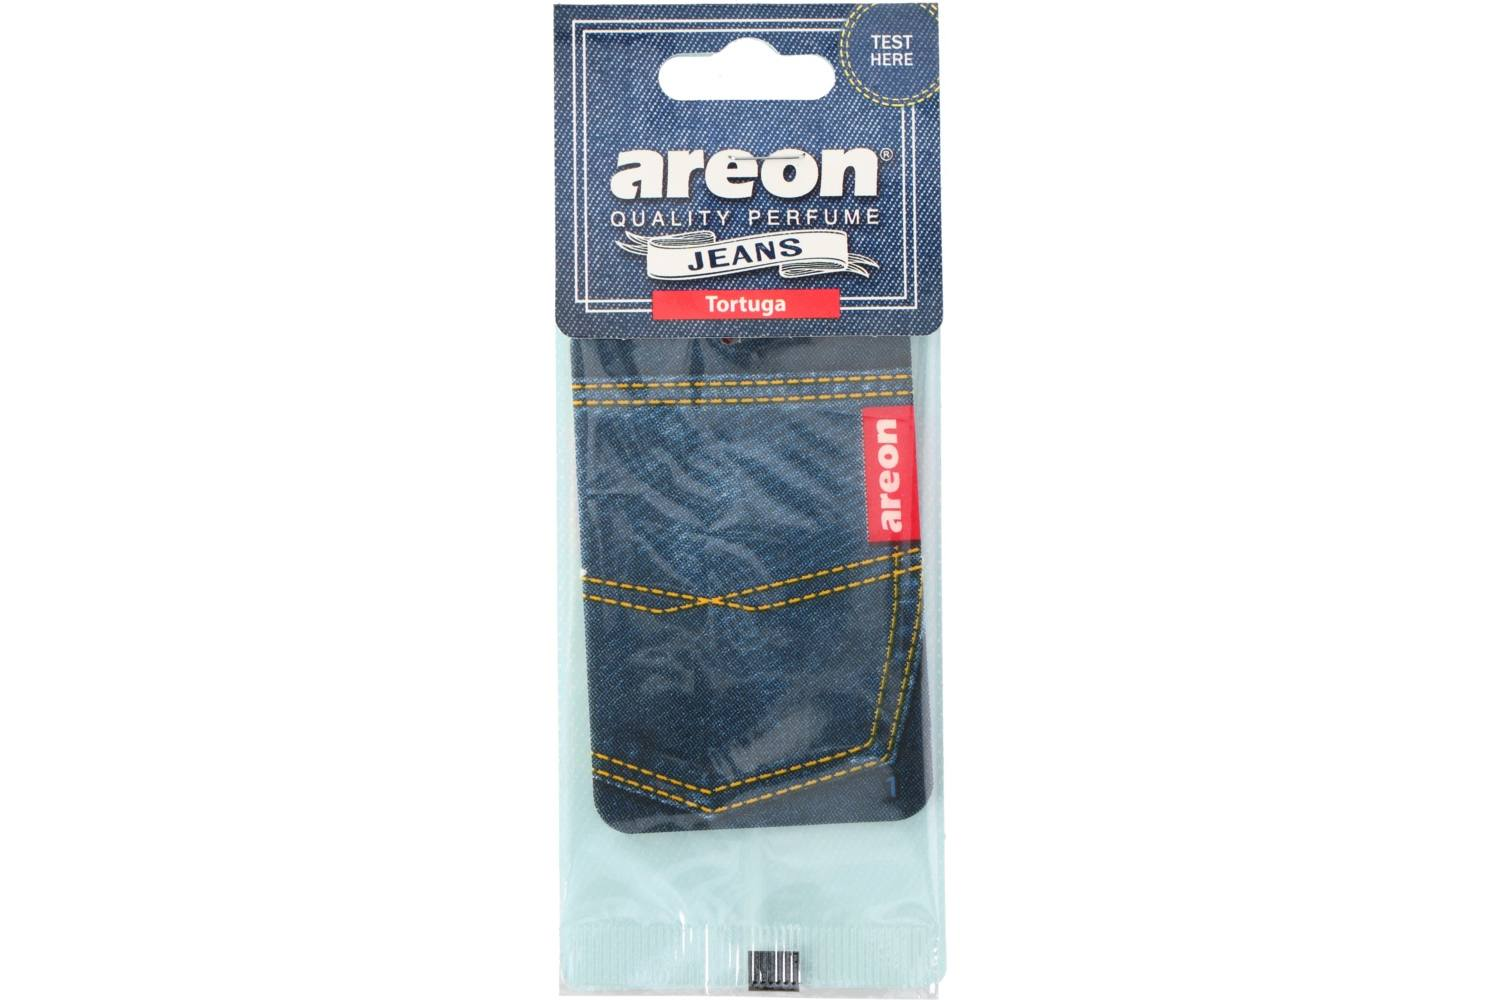 Air freshener, Areon Jeans, tortuga 1